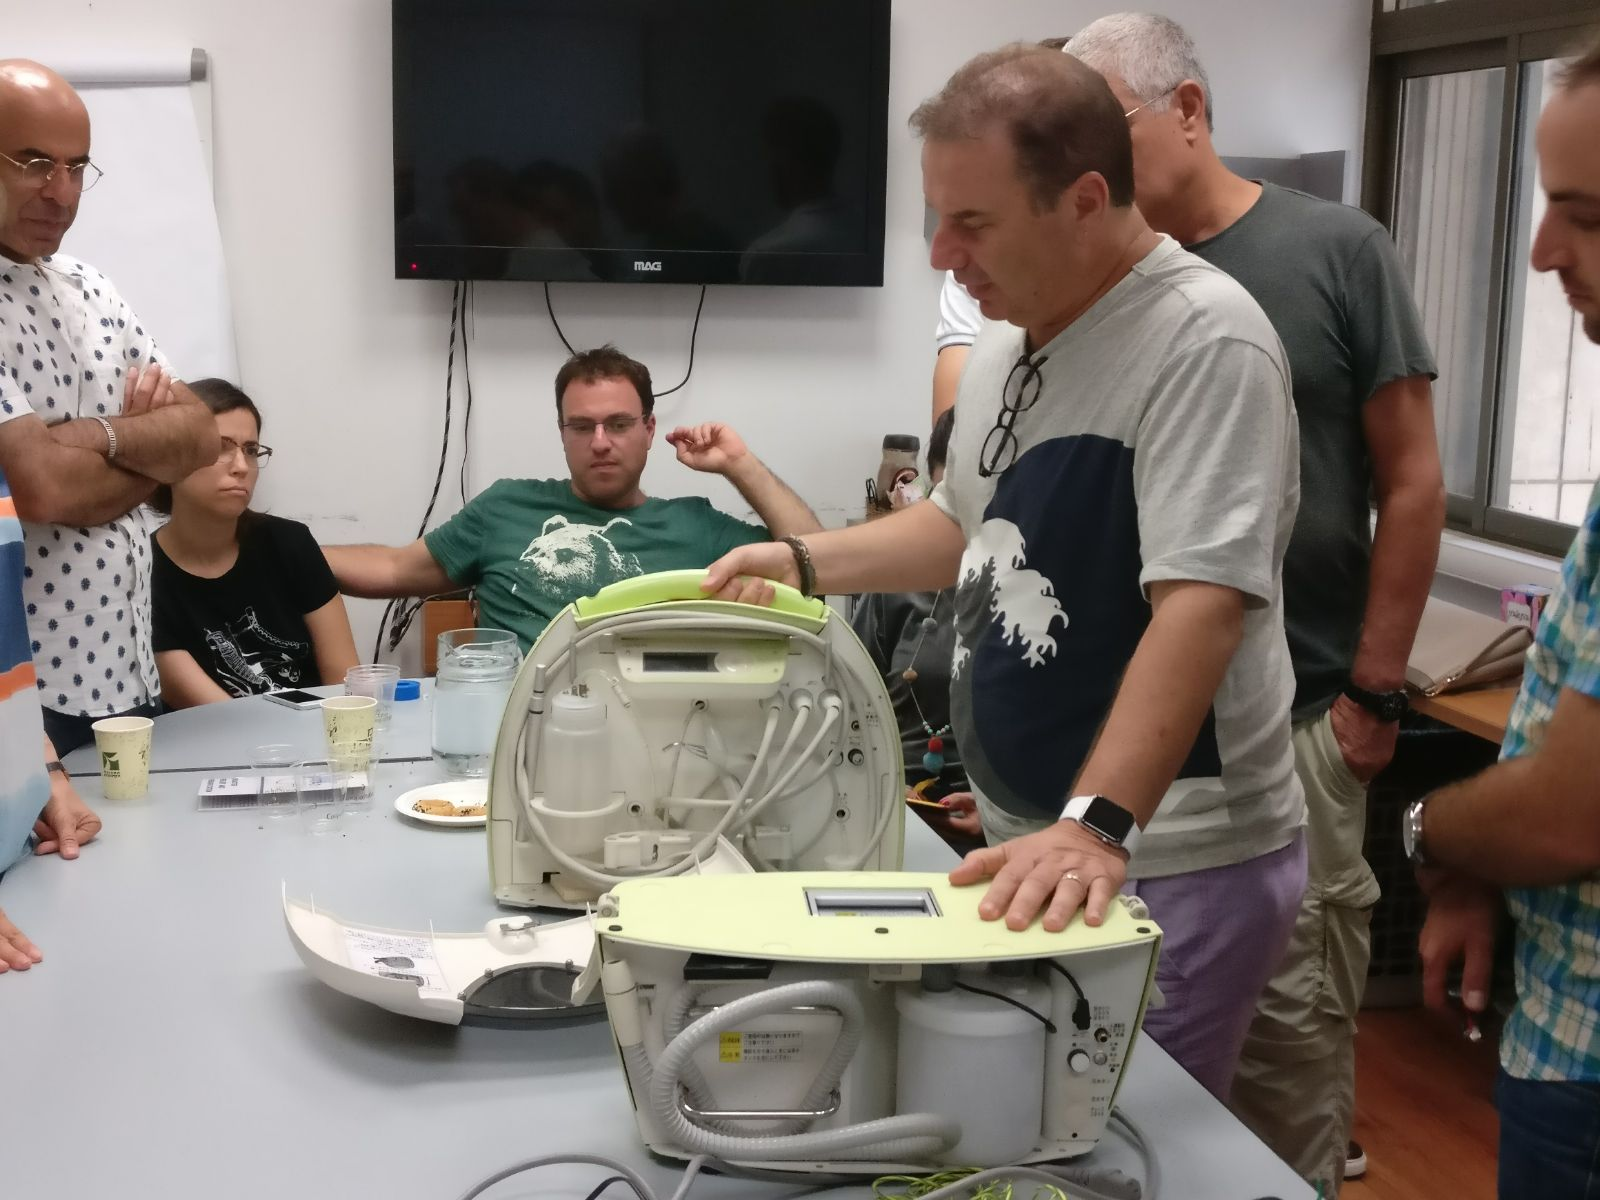 Demonstrating the portable unit